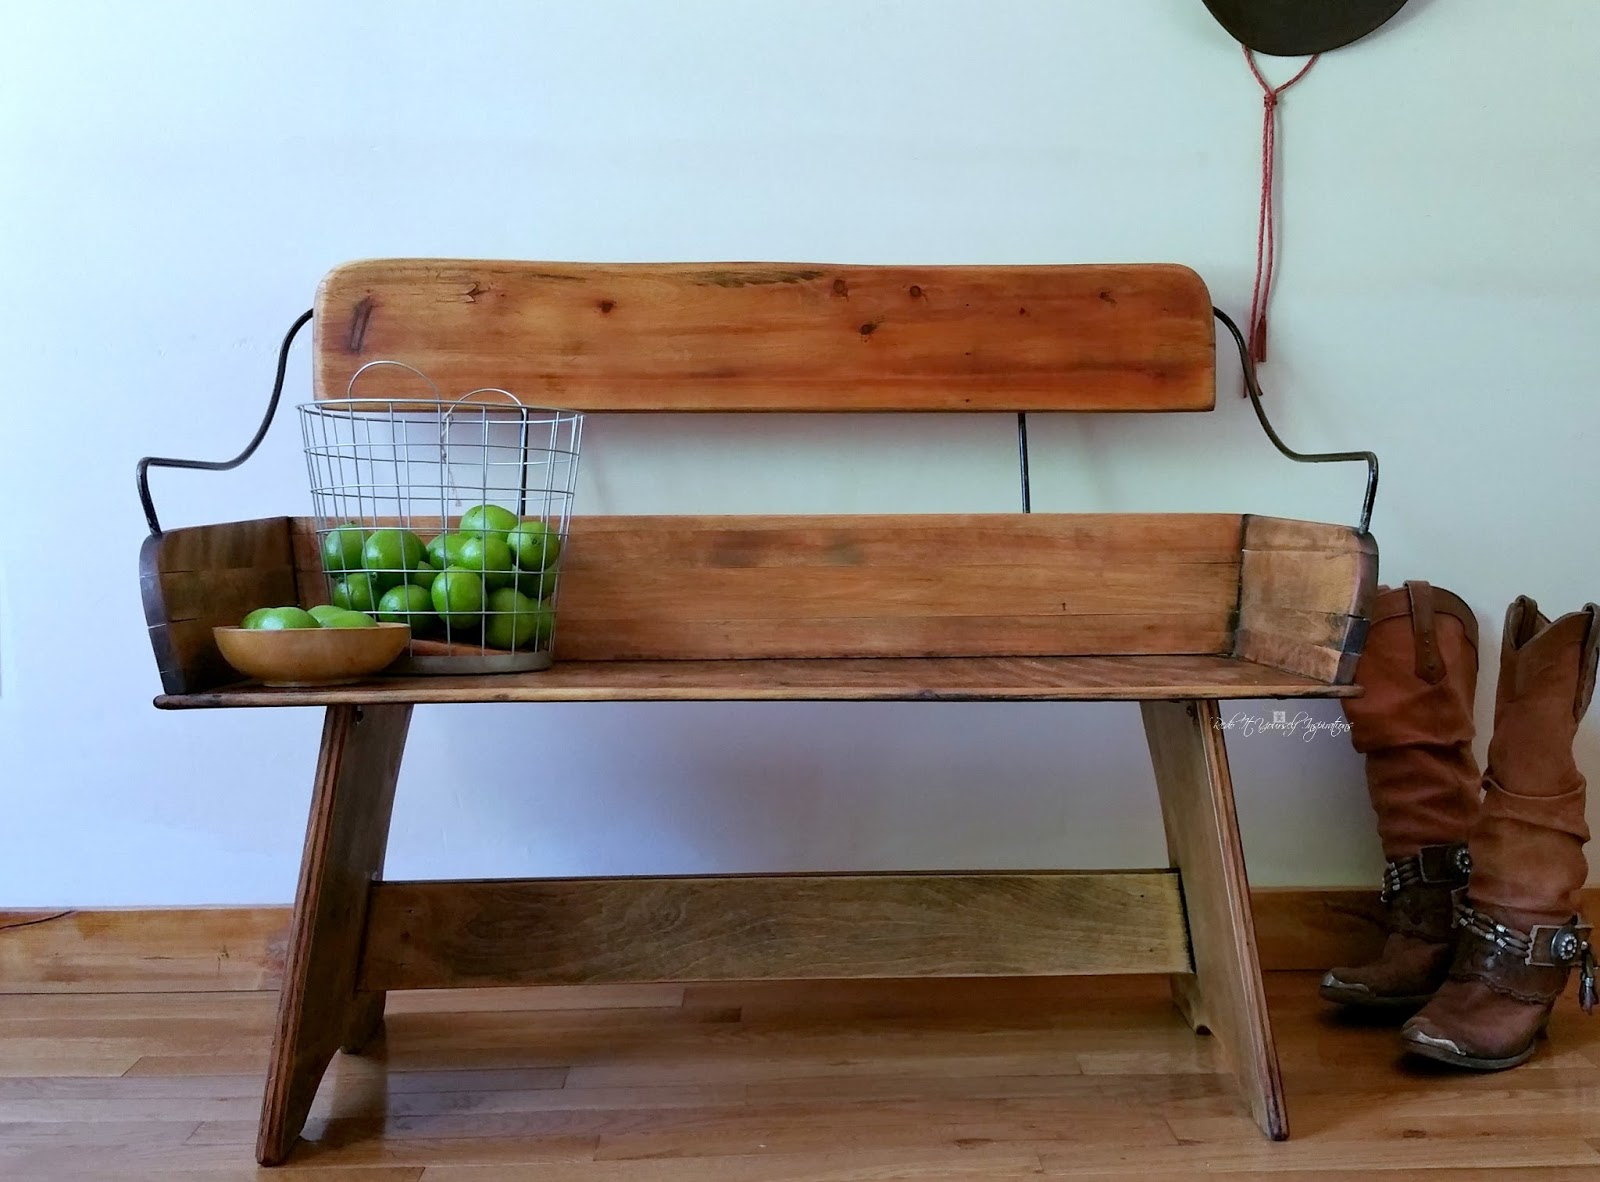 Very Impressive portraiture of Horse Carriage Bench Seat Makeover Redo It Yourself Inspirations  with #436E24 color and 1600x1182 pixels